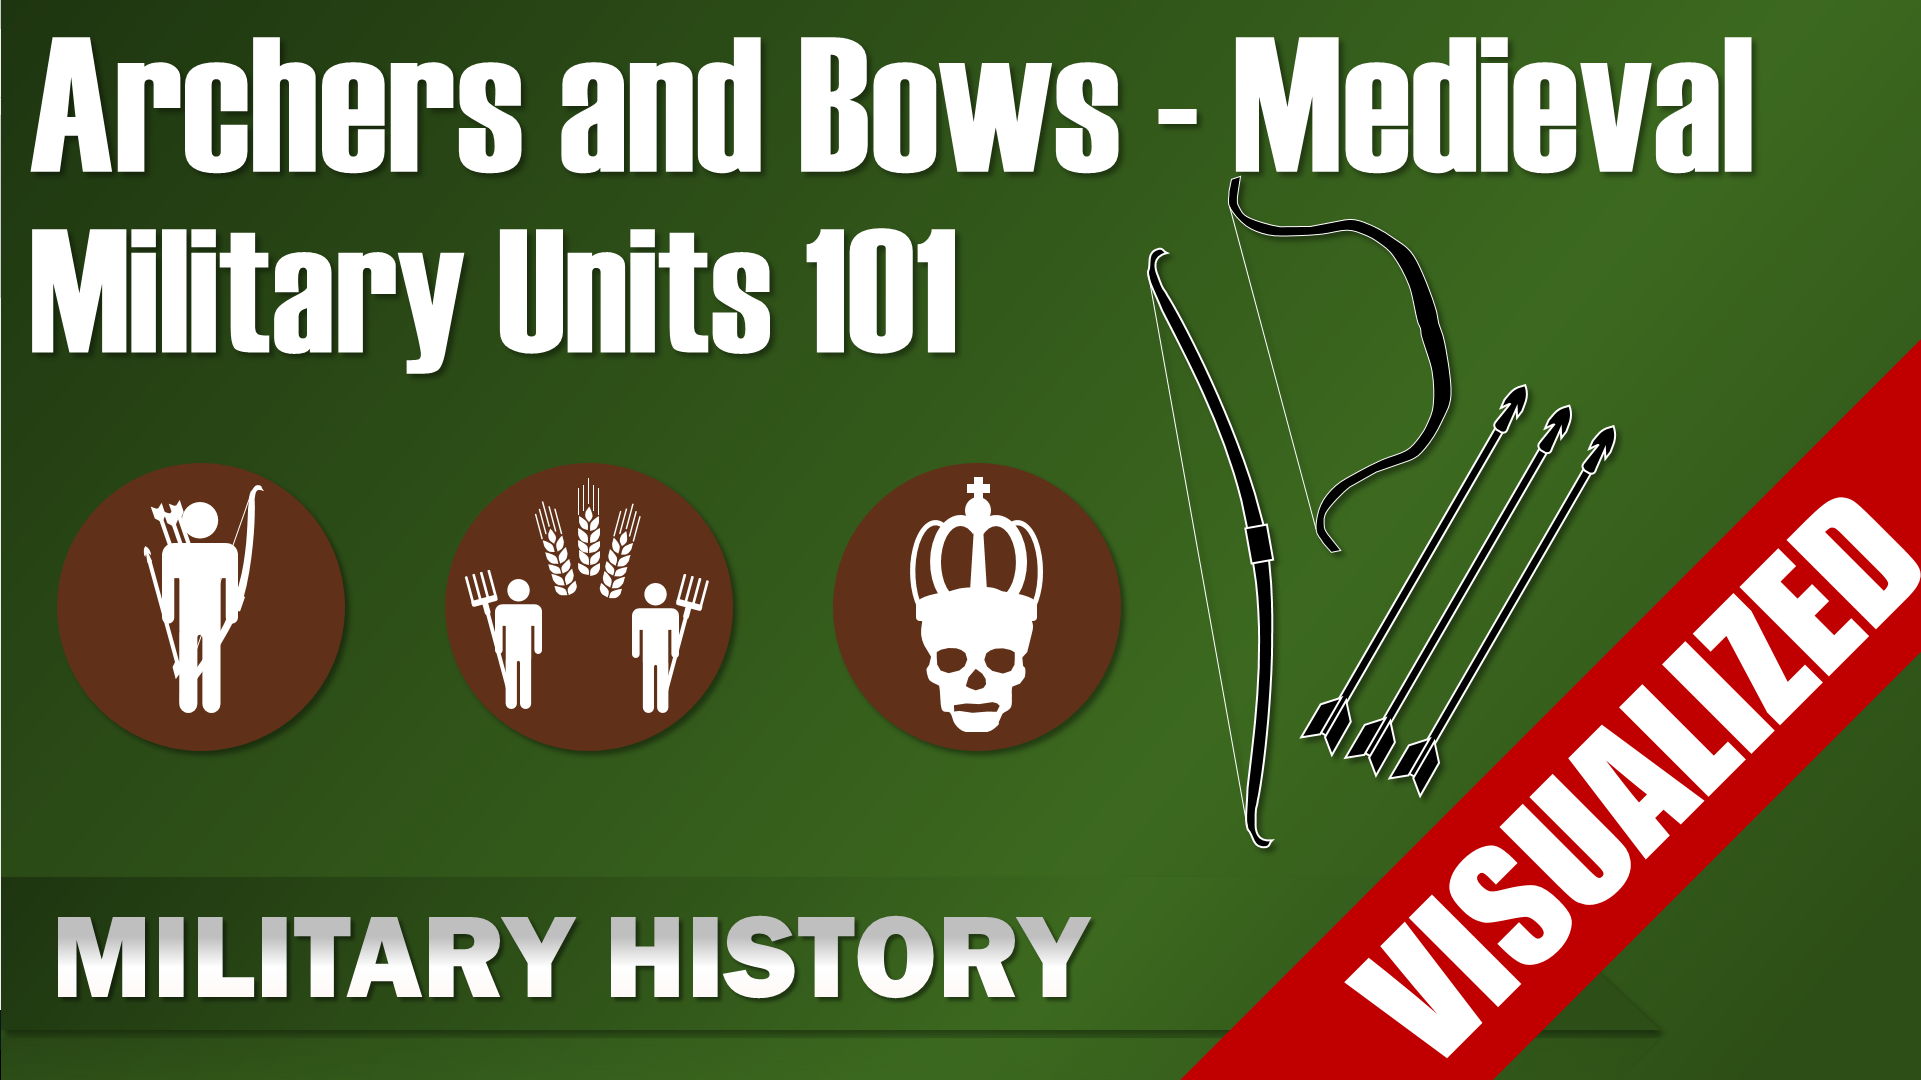 [Unit 101] Archer and Bow (Medieval)